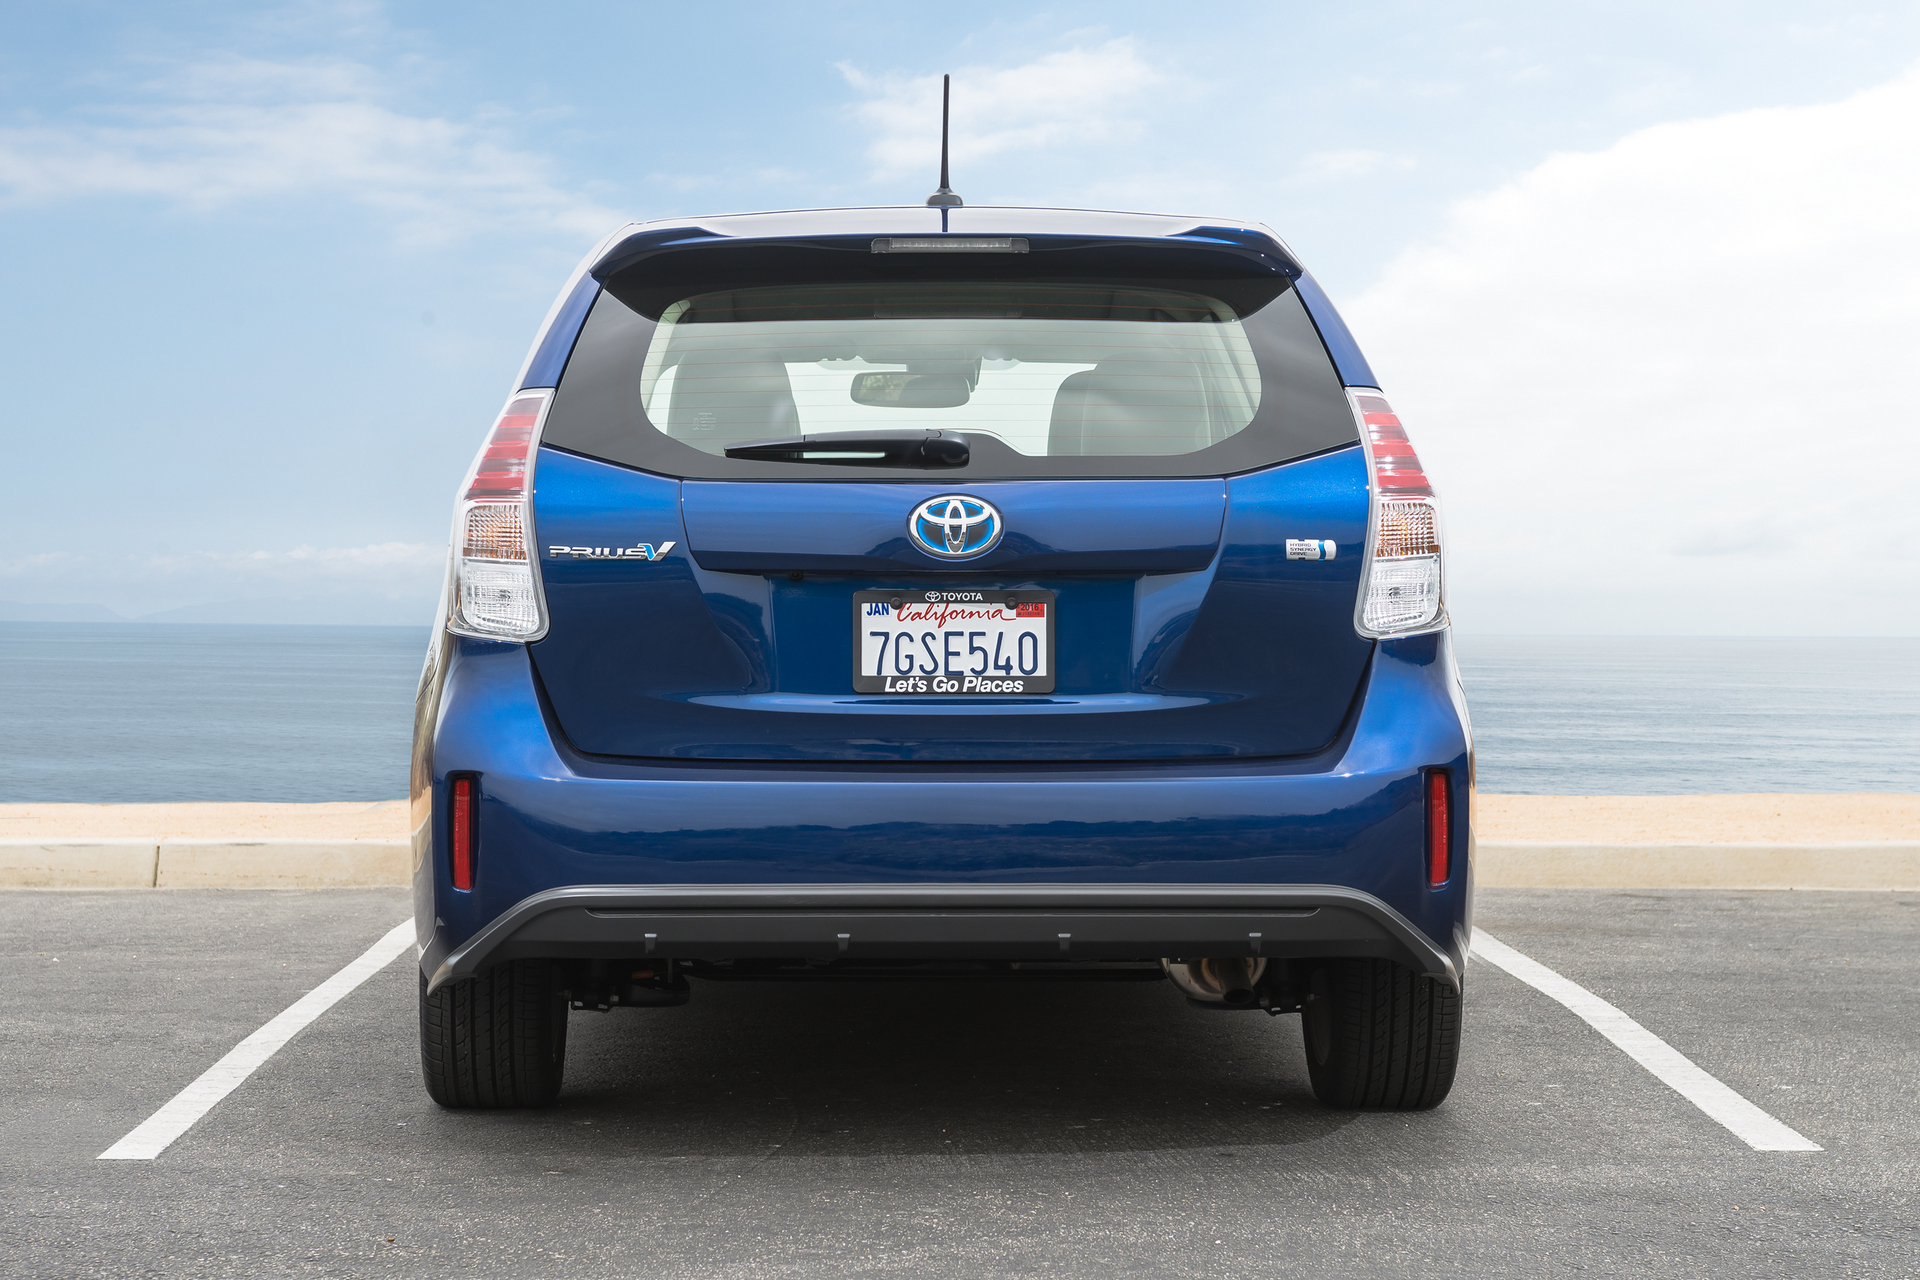 The Most Spacious Cars with Good Gas Mileage - Carrrs Auto ...